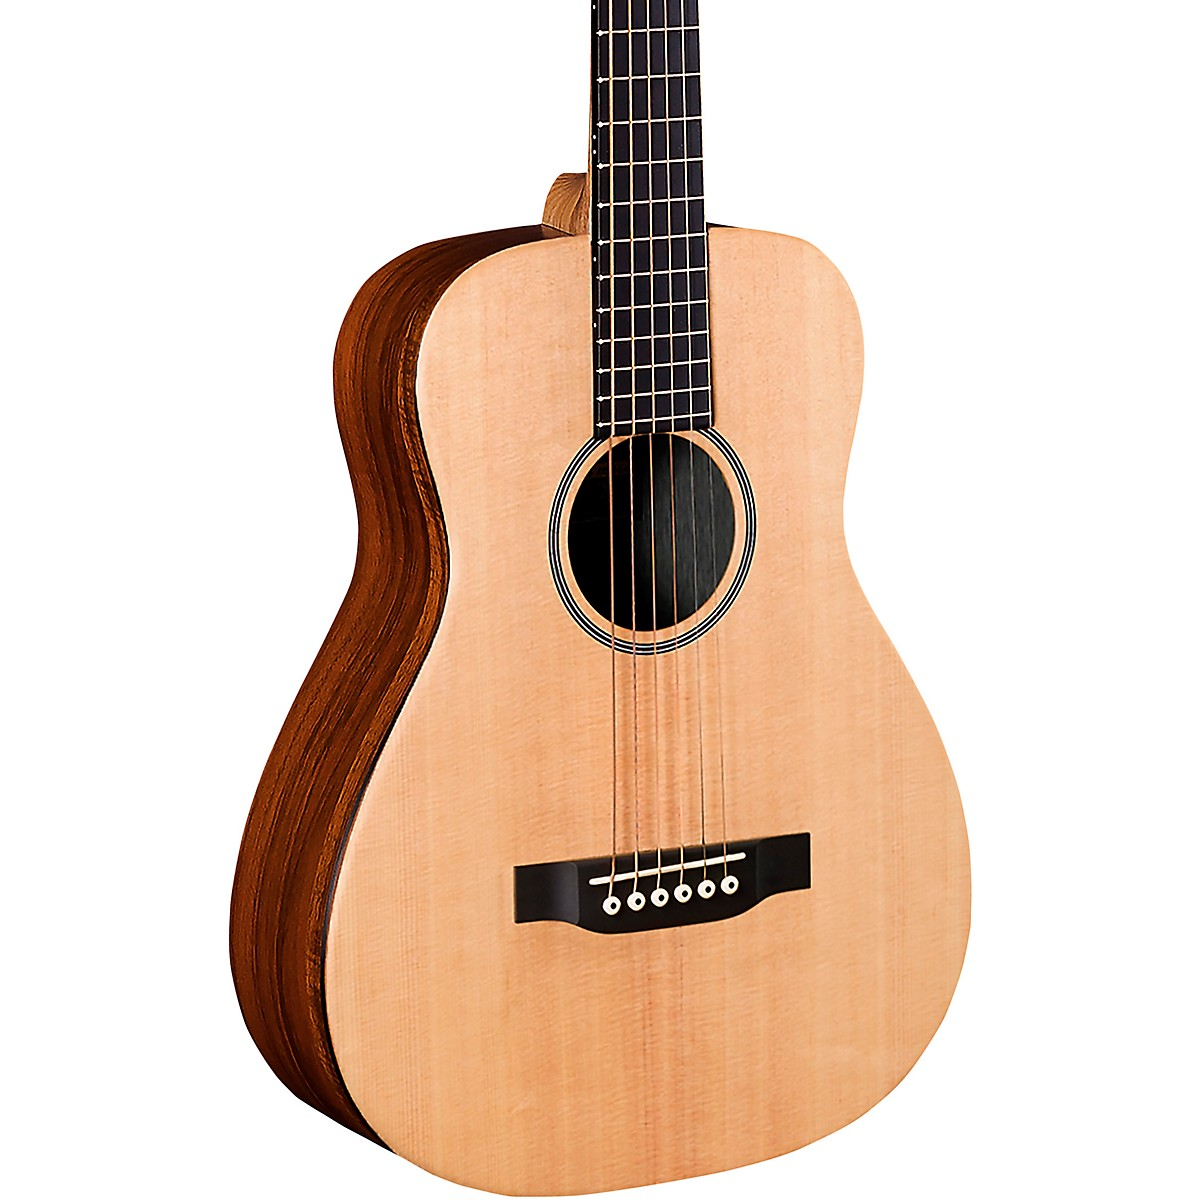 Martin LXK2E Solid Spruce with Koa Little Martin Acoustic-Electric Guitar